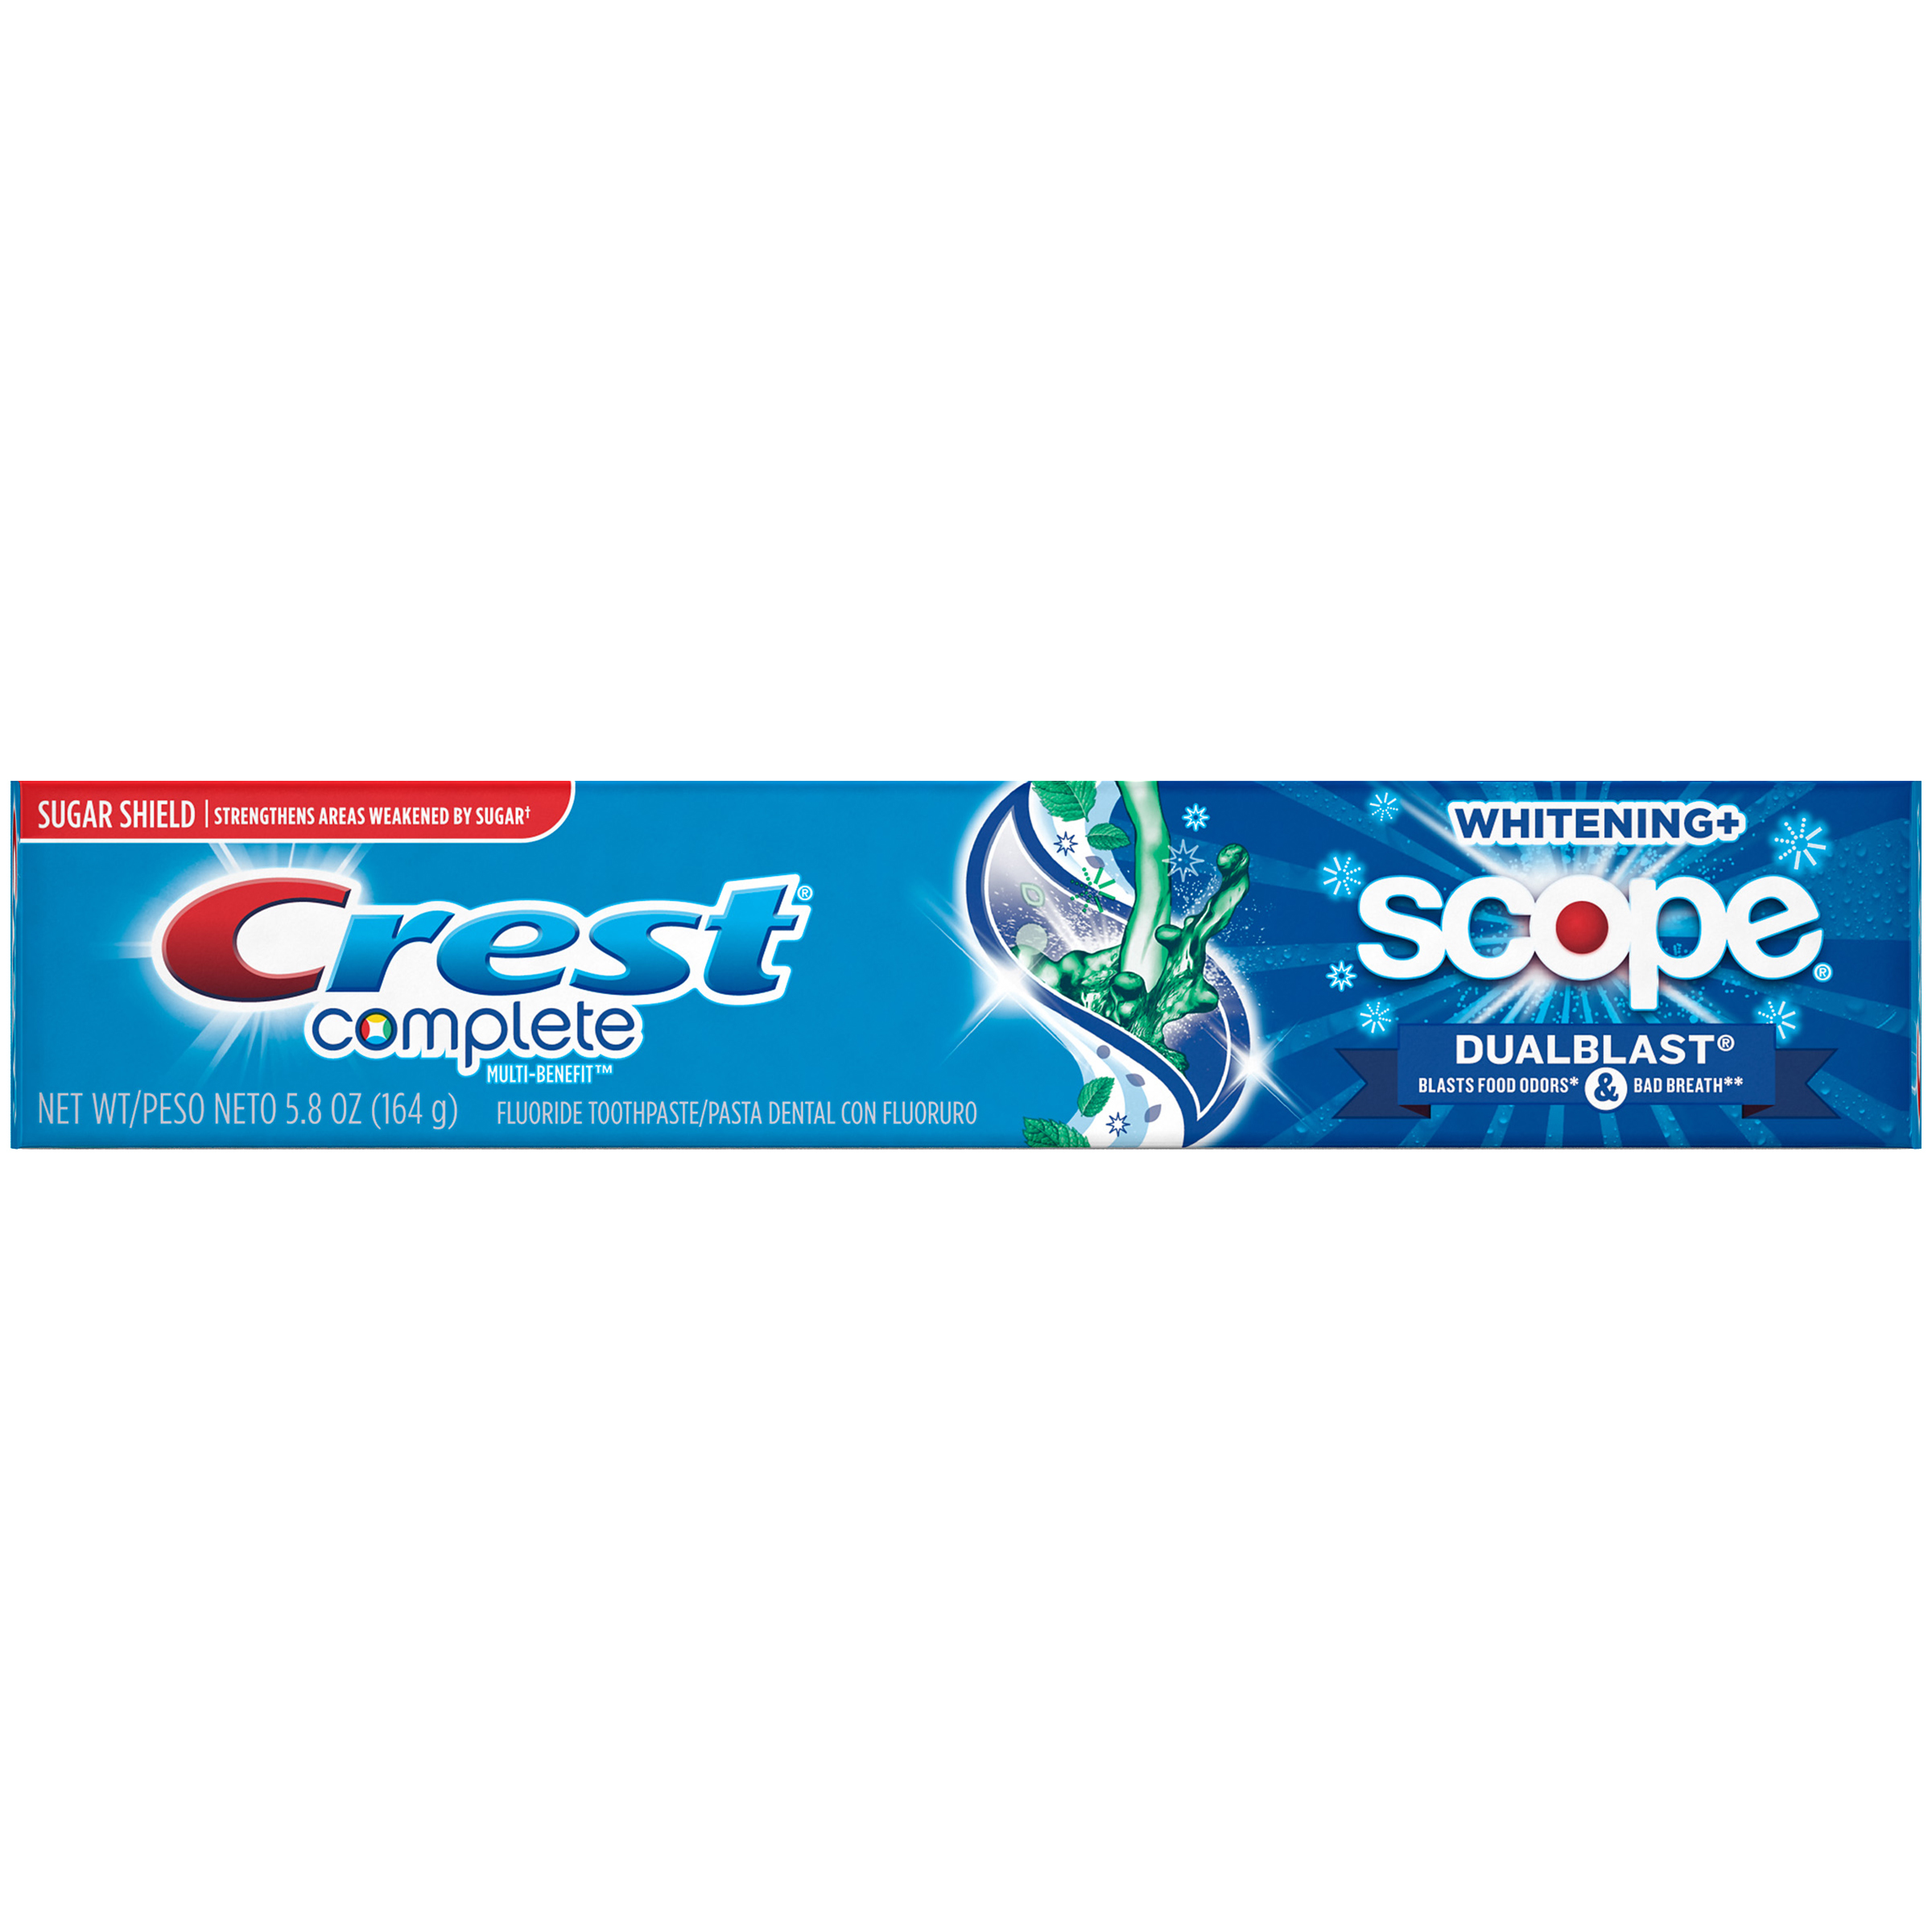 Crest Complete Multi-Benefit Whitening + Scope DualBlast Toothpaste, Mint, 5.8 Ounce